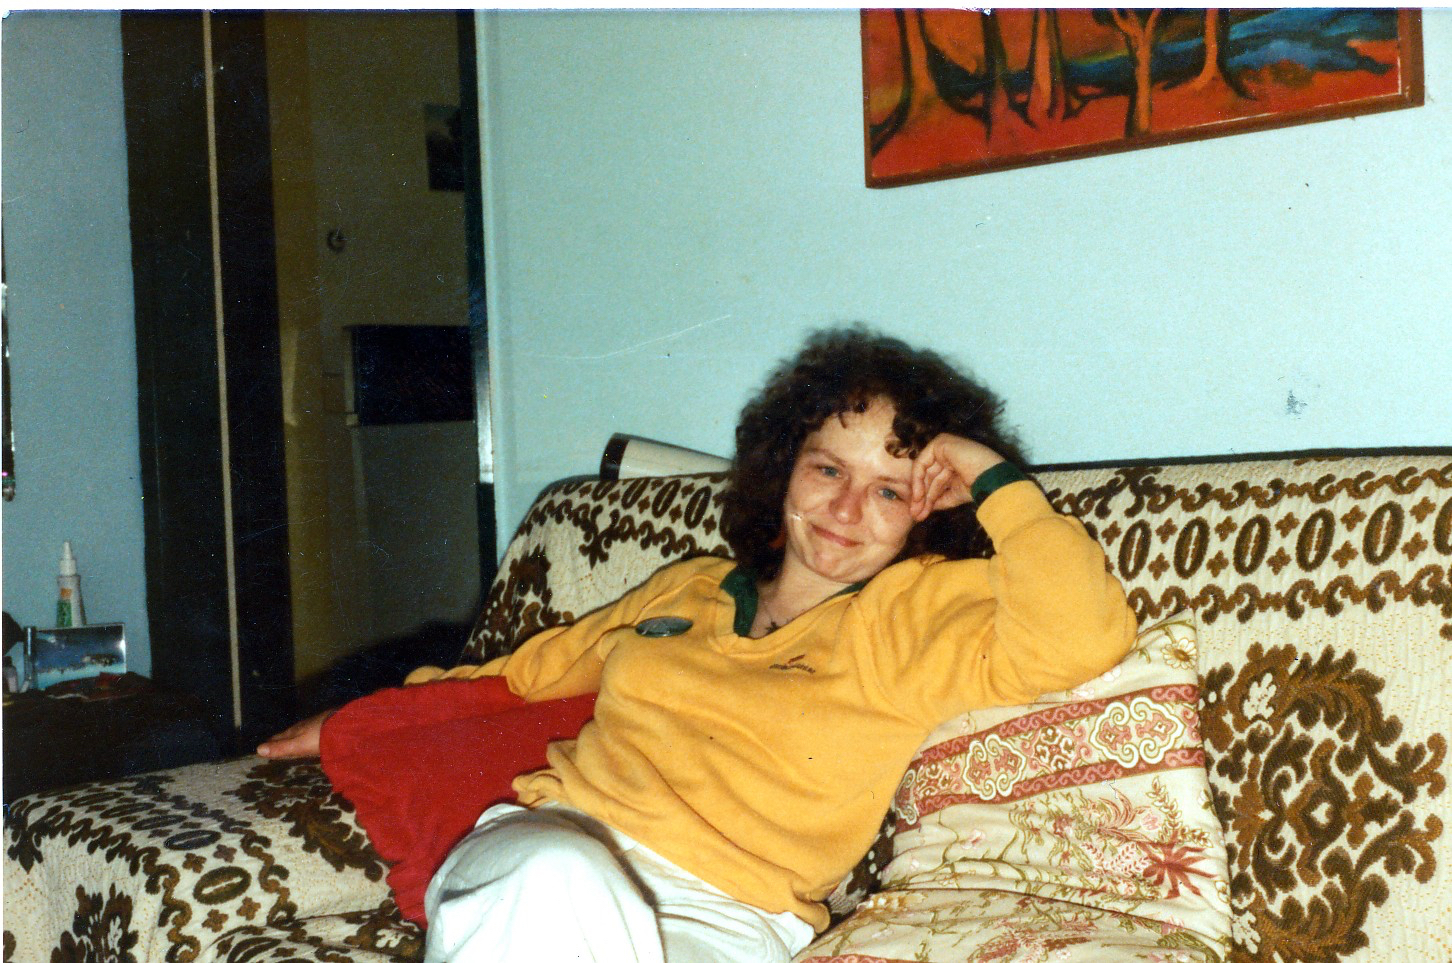 woman with curly hair sitting on couch